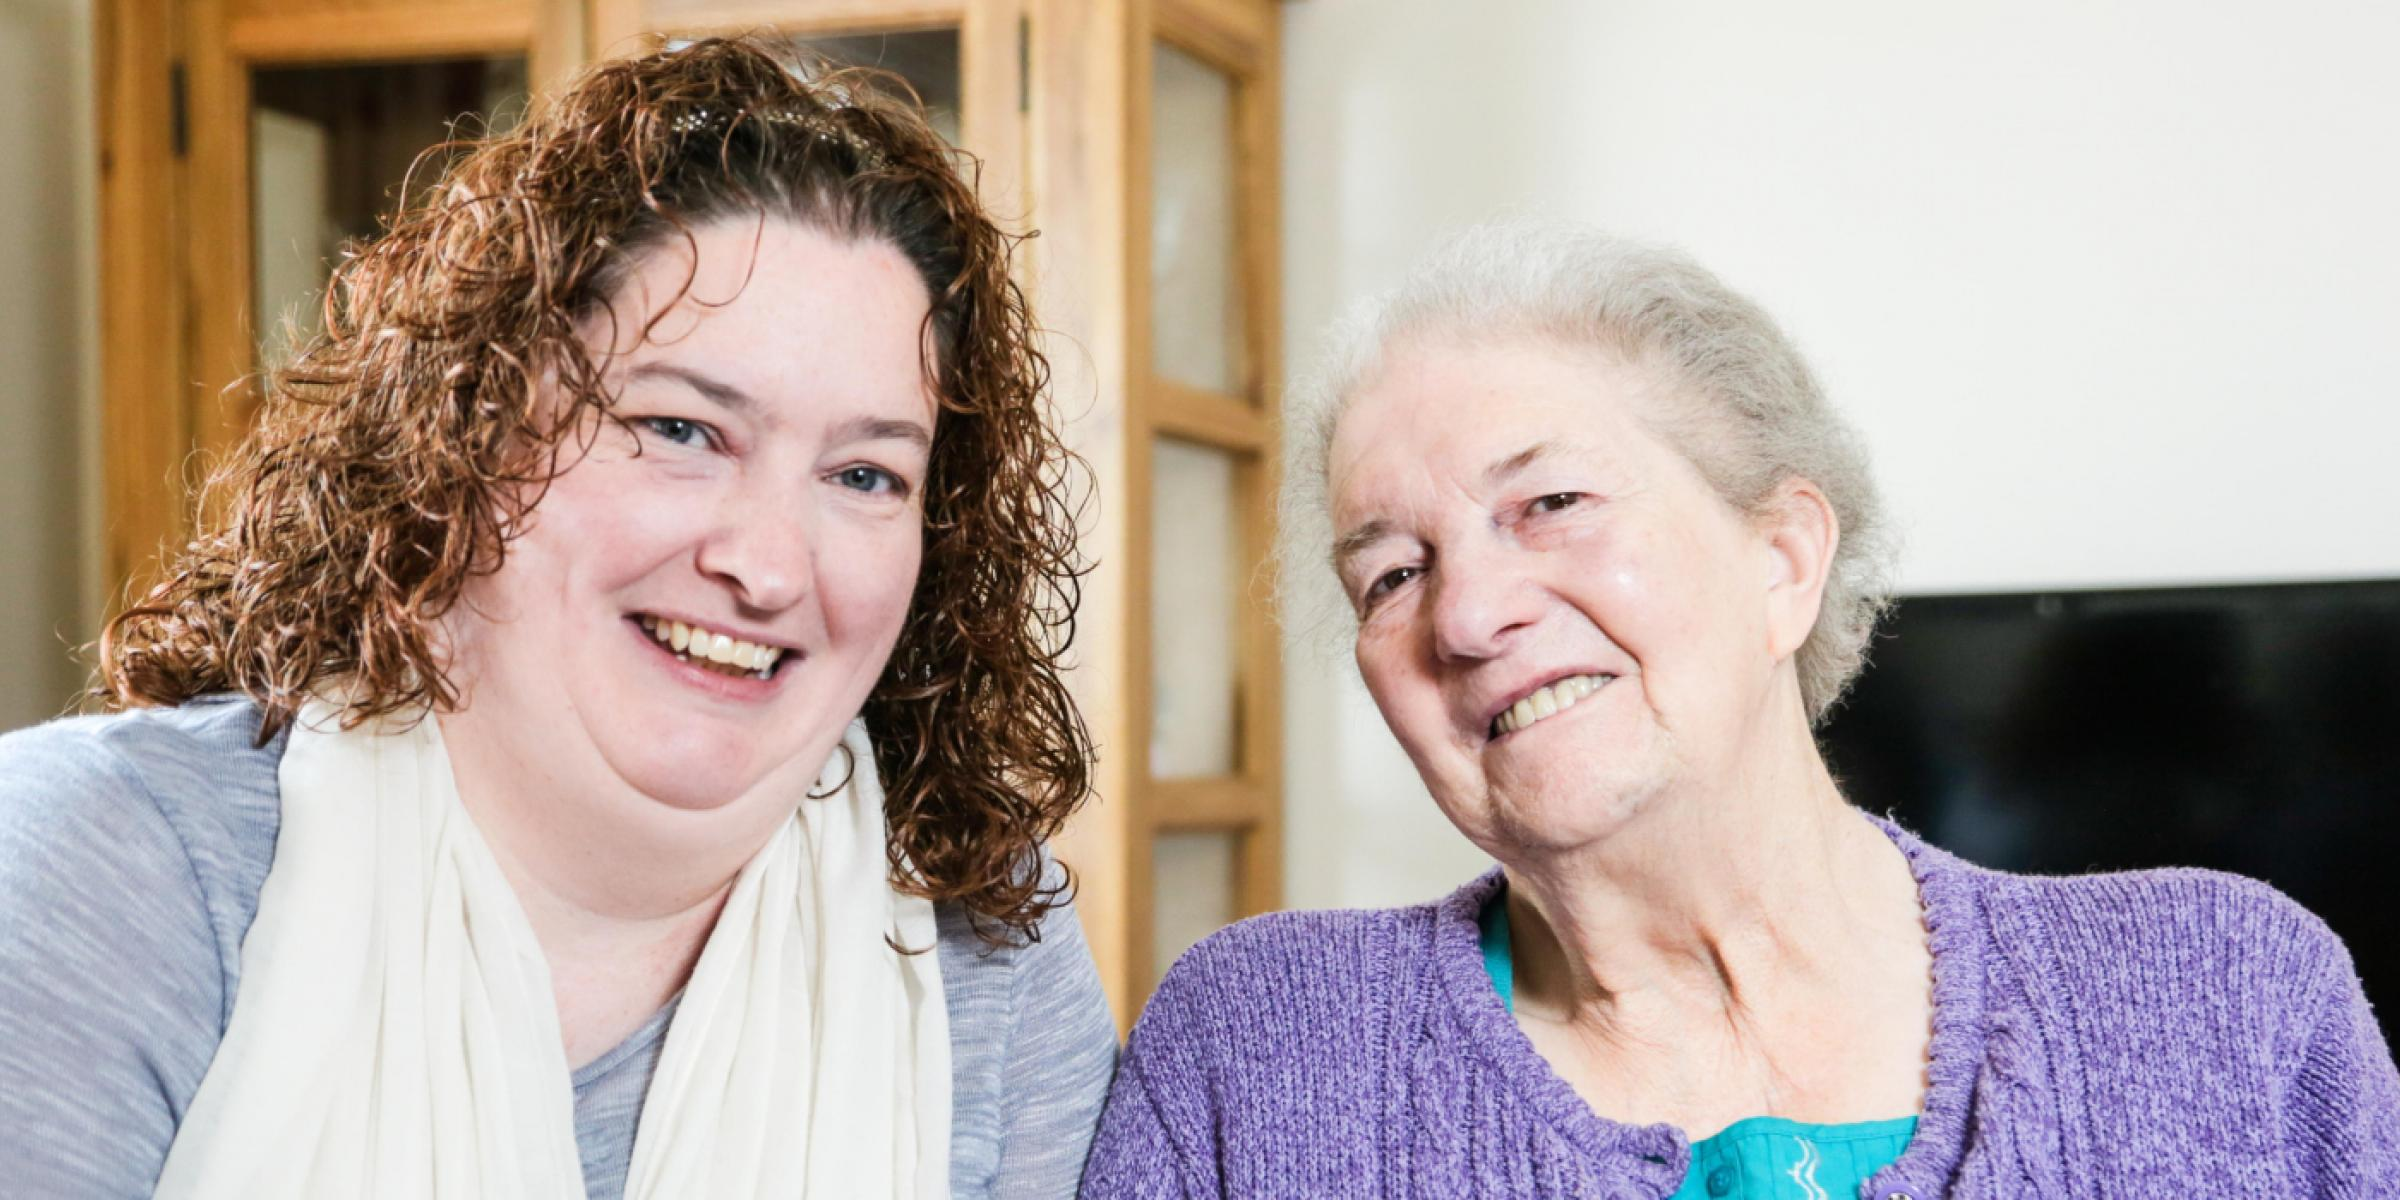 A carer smiling with a person with dementia